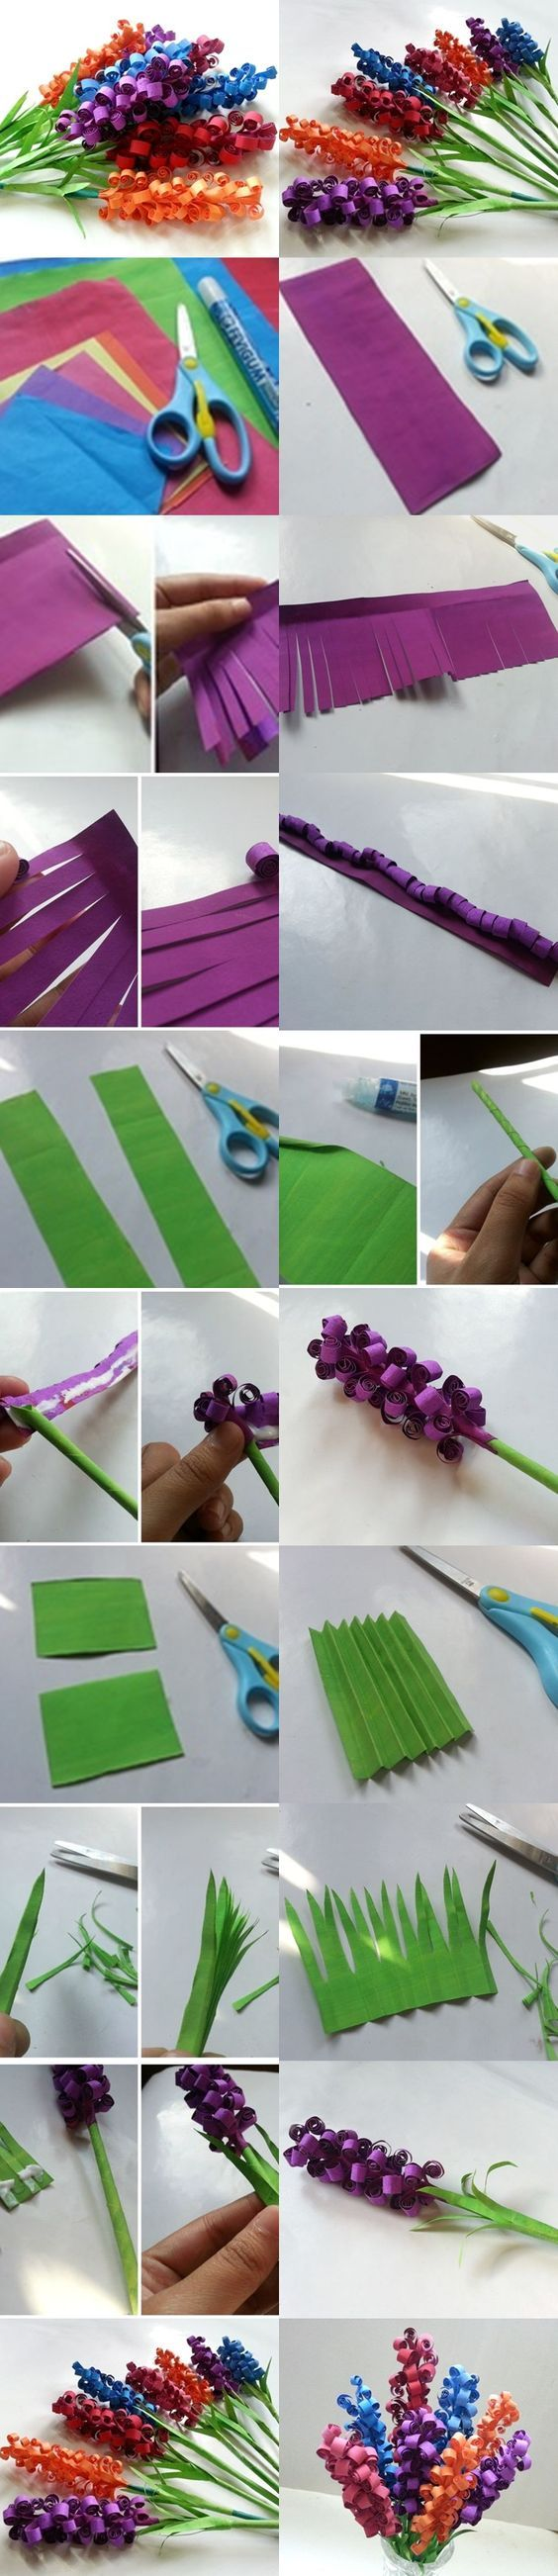 DIY Swirly Paper Flowers look really cute. My first thought was to try rolling the paper before cutting into strips.: